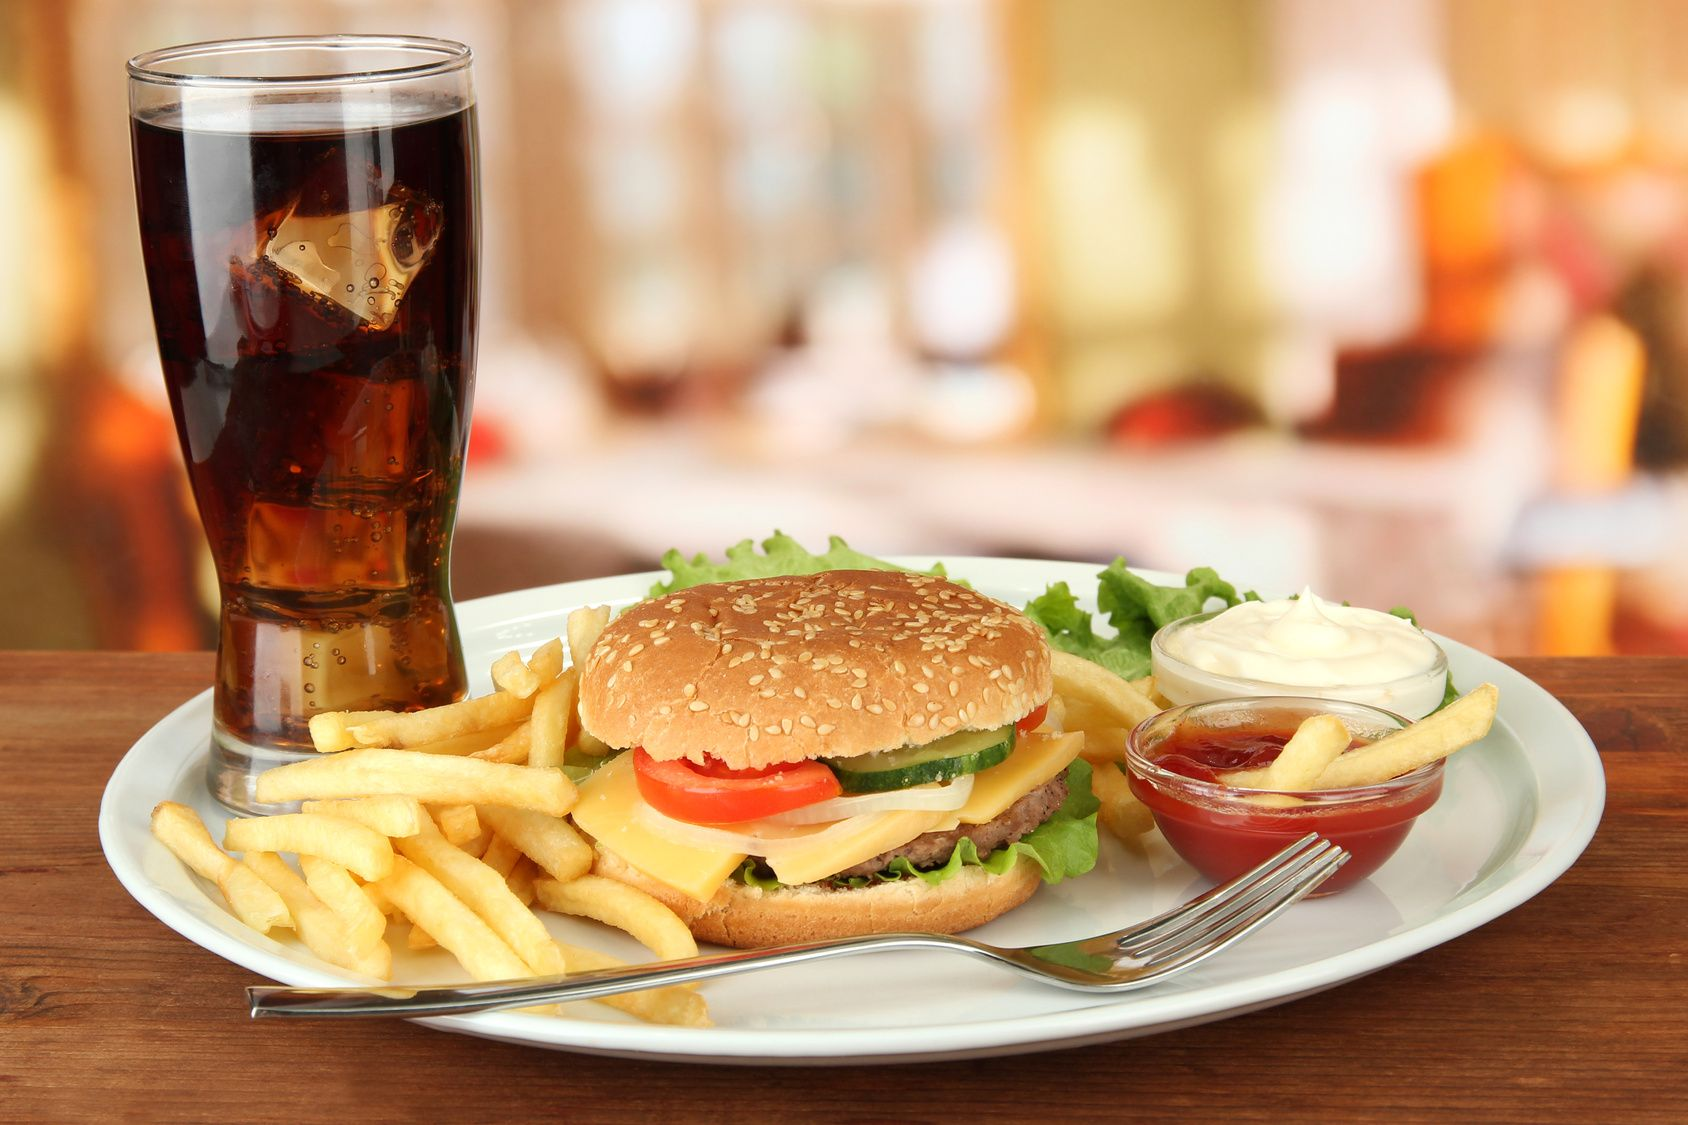 Did You Know Having Hot Food With Cold Drinks May Damage